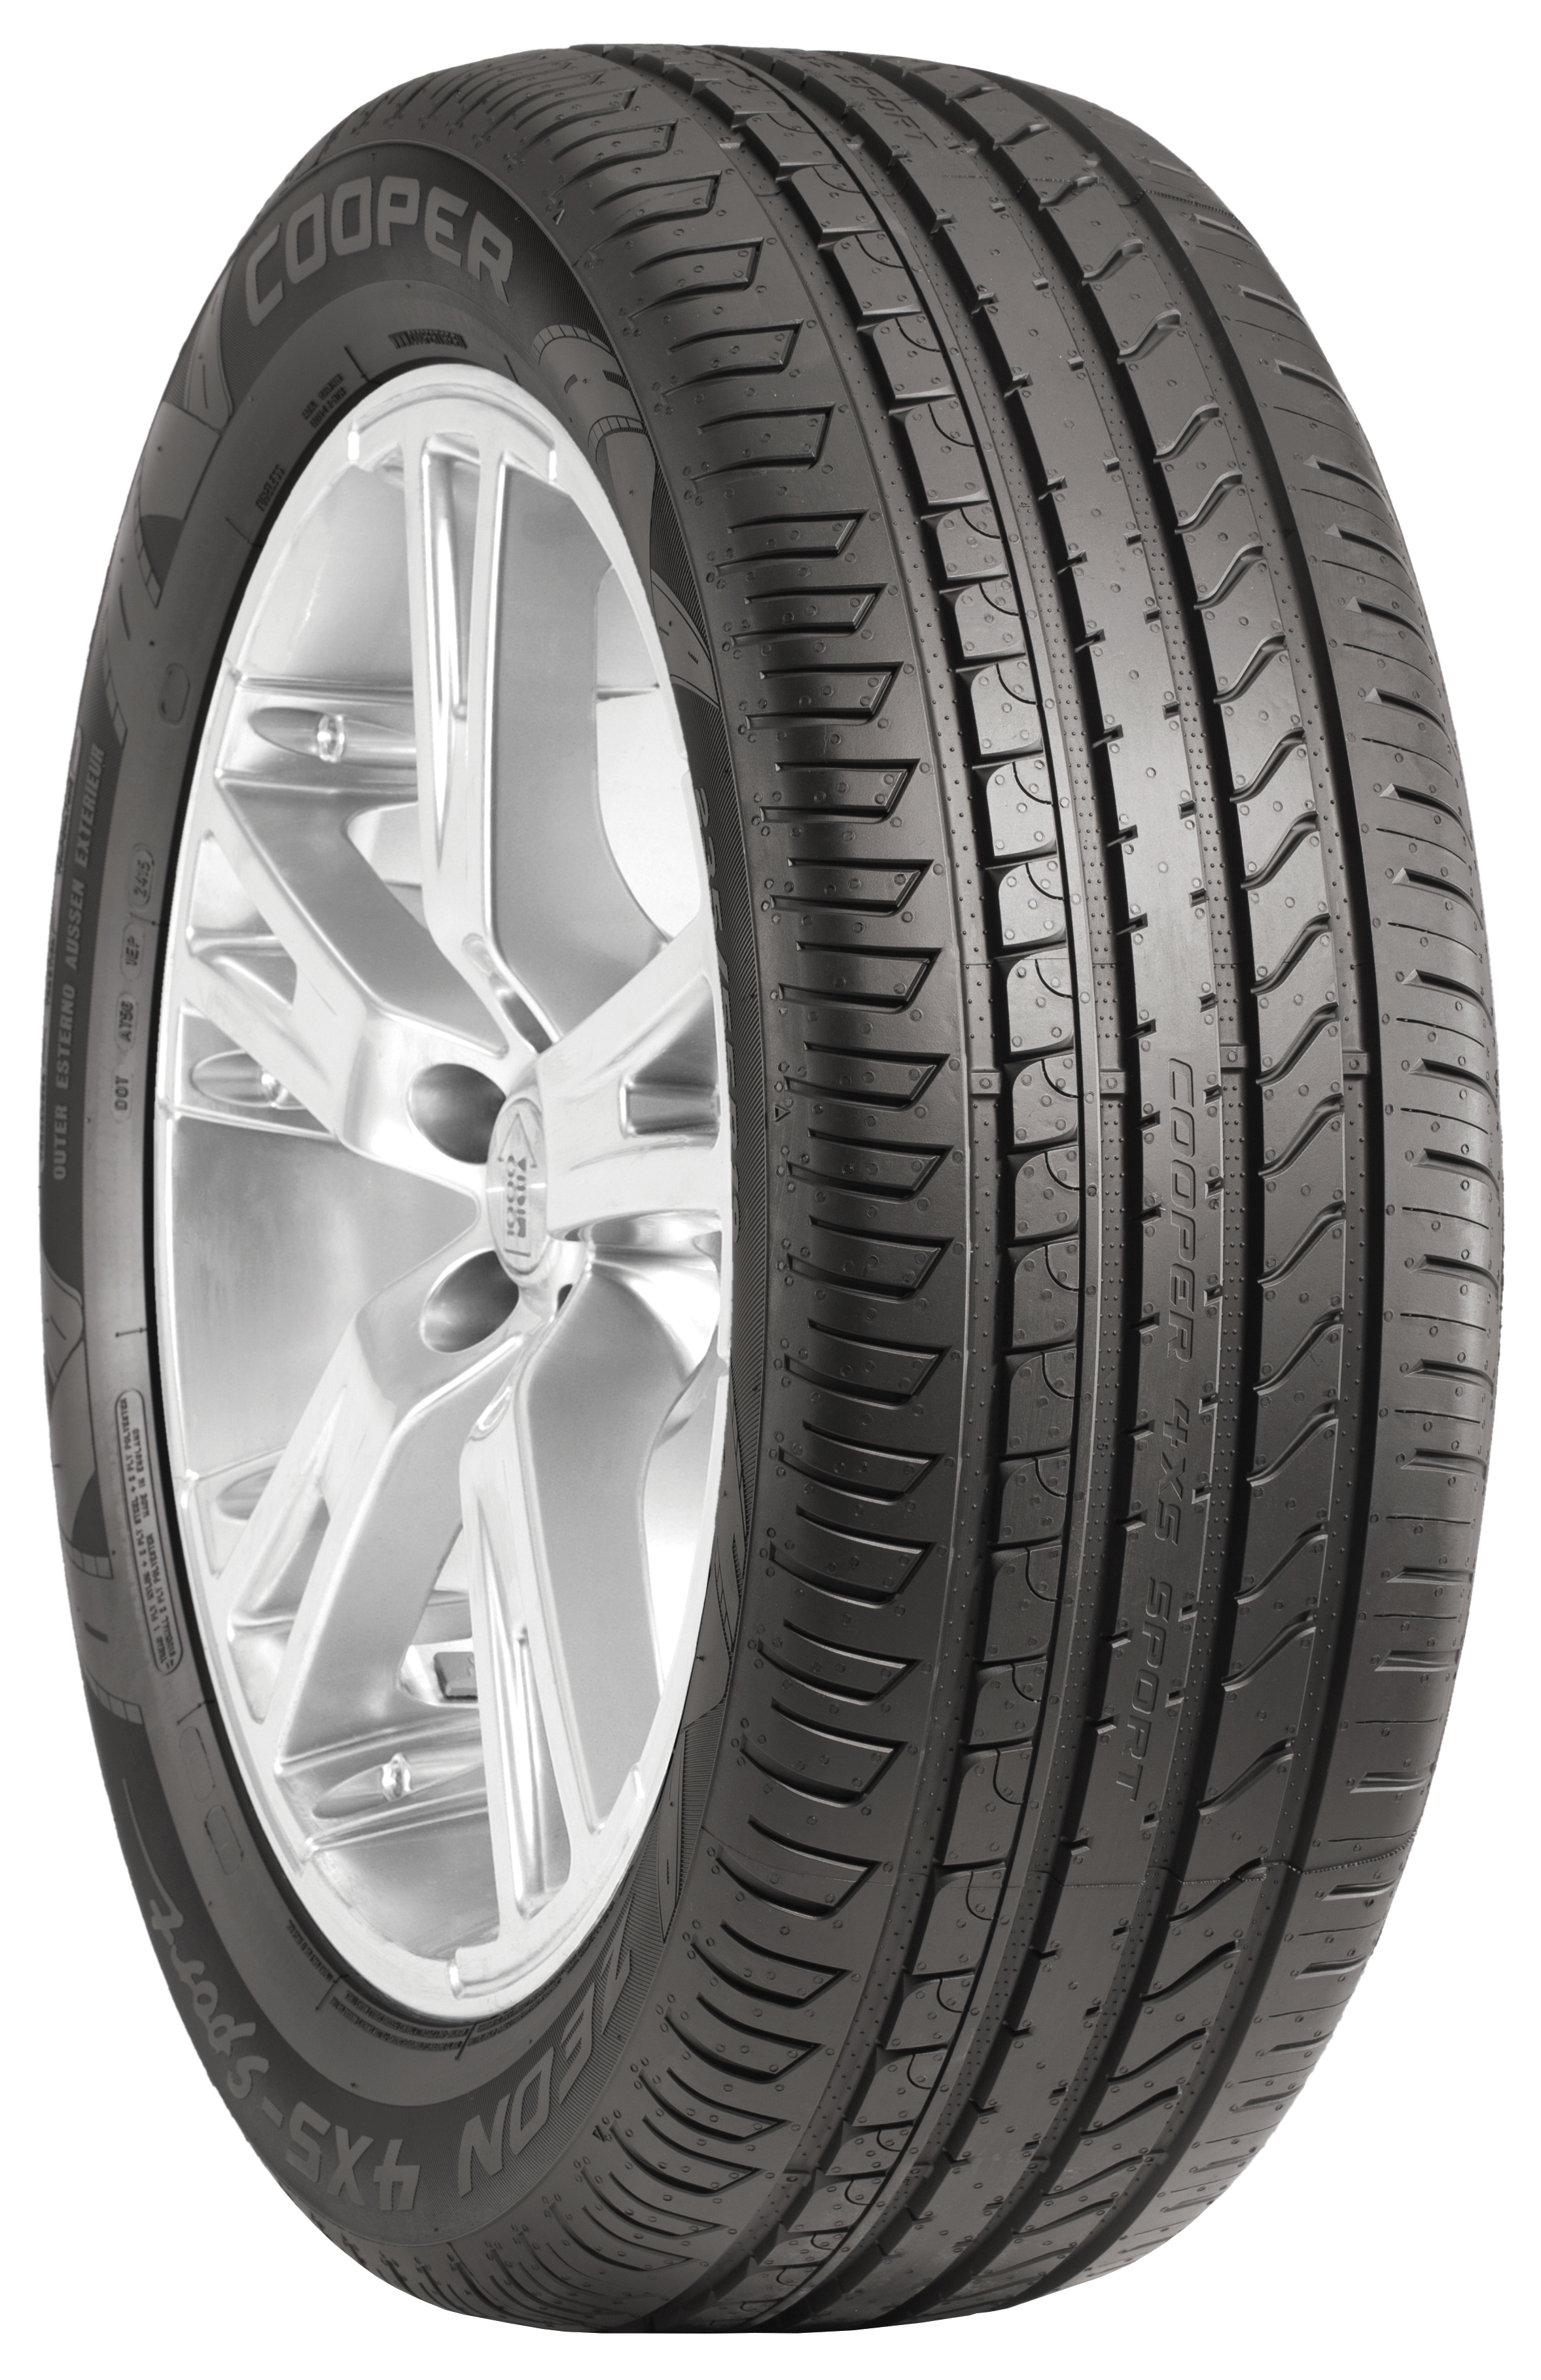 Gomme Nuove Cooper Tyres 235/50 R18 97V ZEON 4XS SPORT pneumatici nuovi Estivo